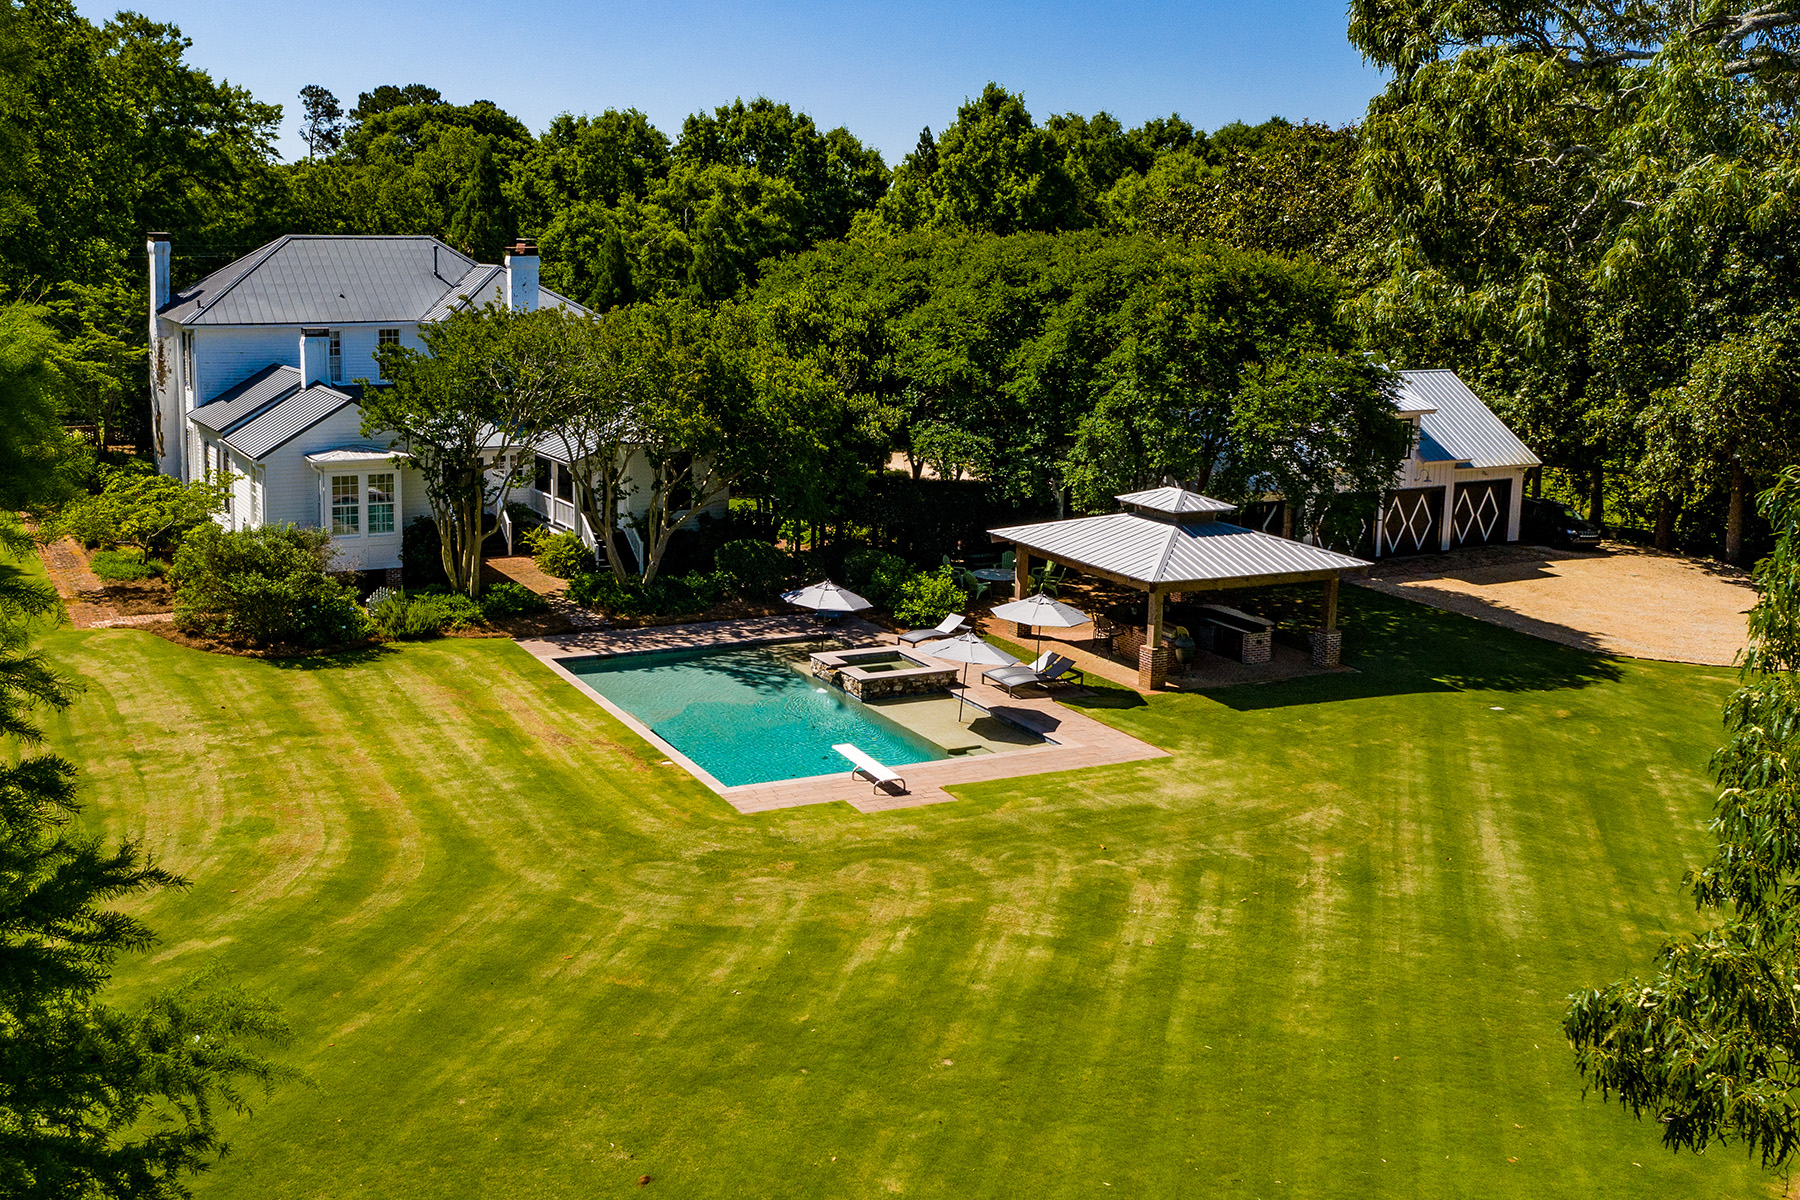 Single Family Homes for Sale at Historic Home Situated on Over Three Acres! 503 N Main Street Madison, Georgia 30650 United States